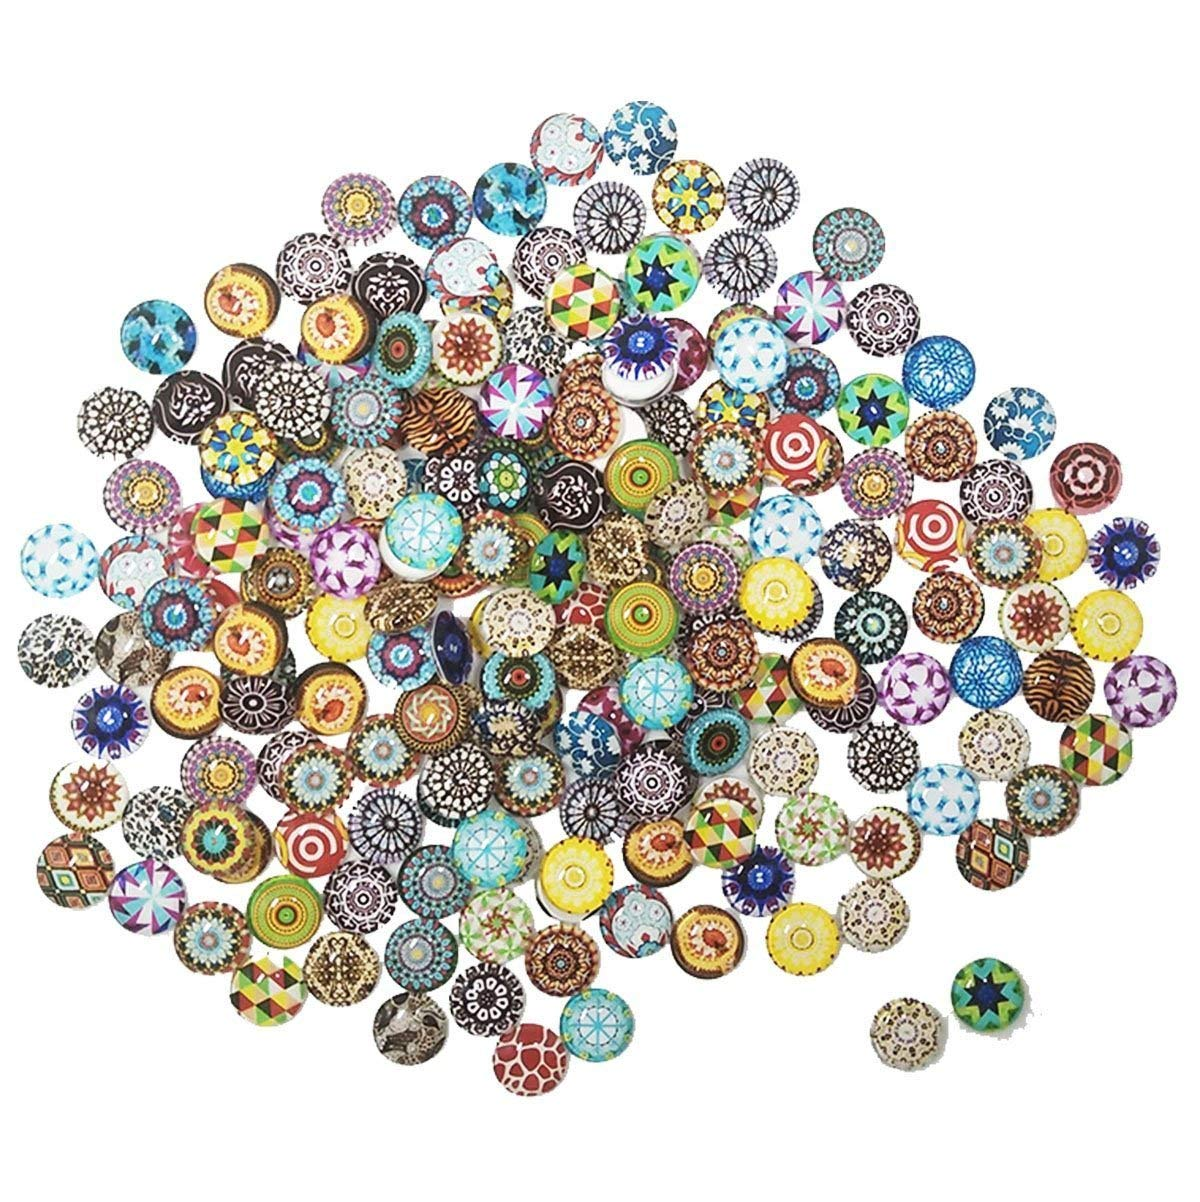 Get Quotations Misscrafts Mosaic Supplies 200pcs Printed Gl Half Round Cabochons Mixed Color Tiles 12mm For